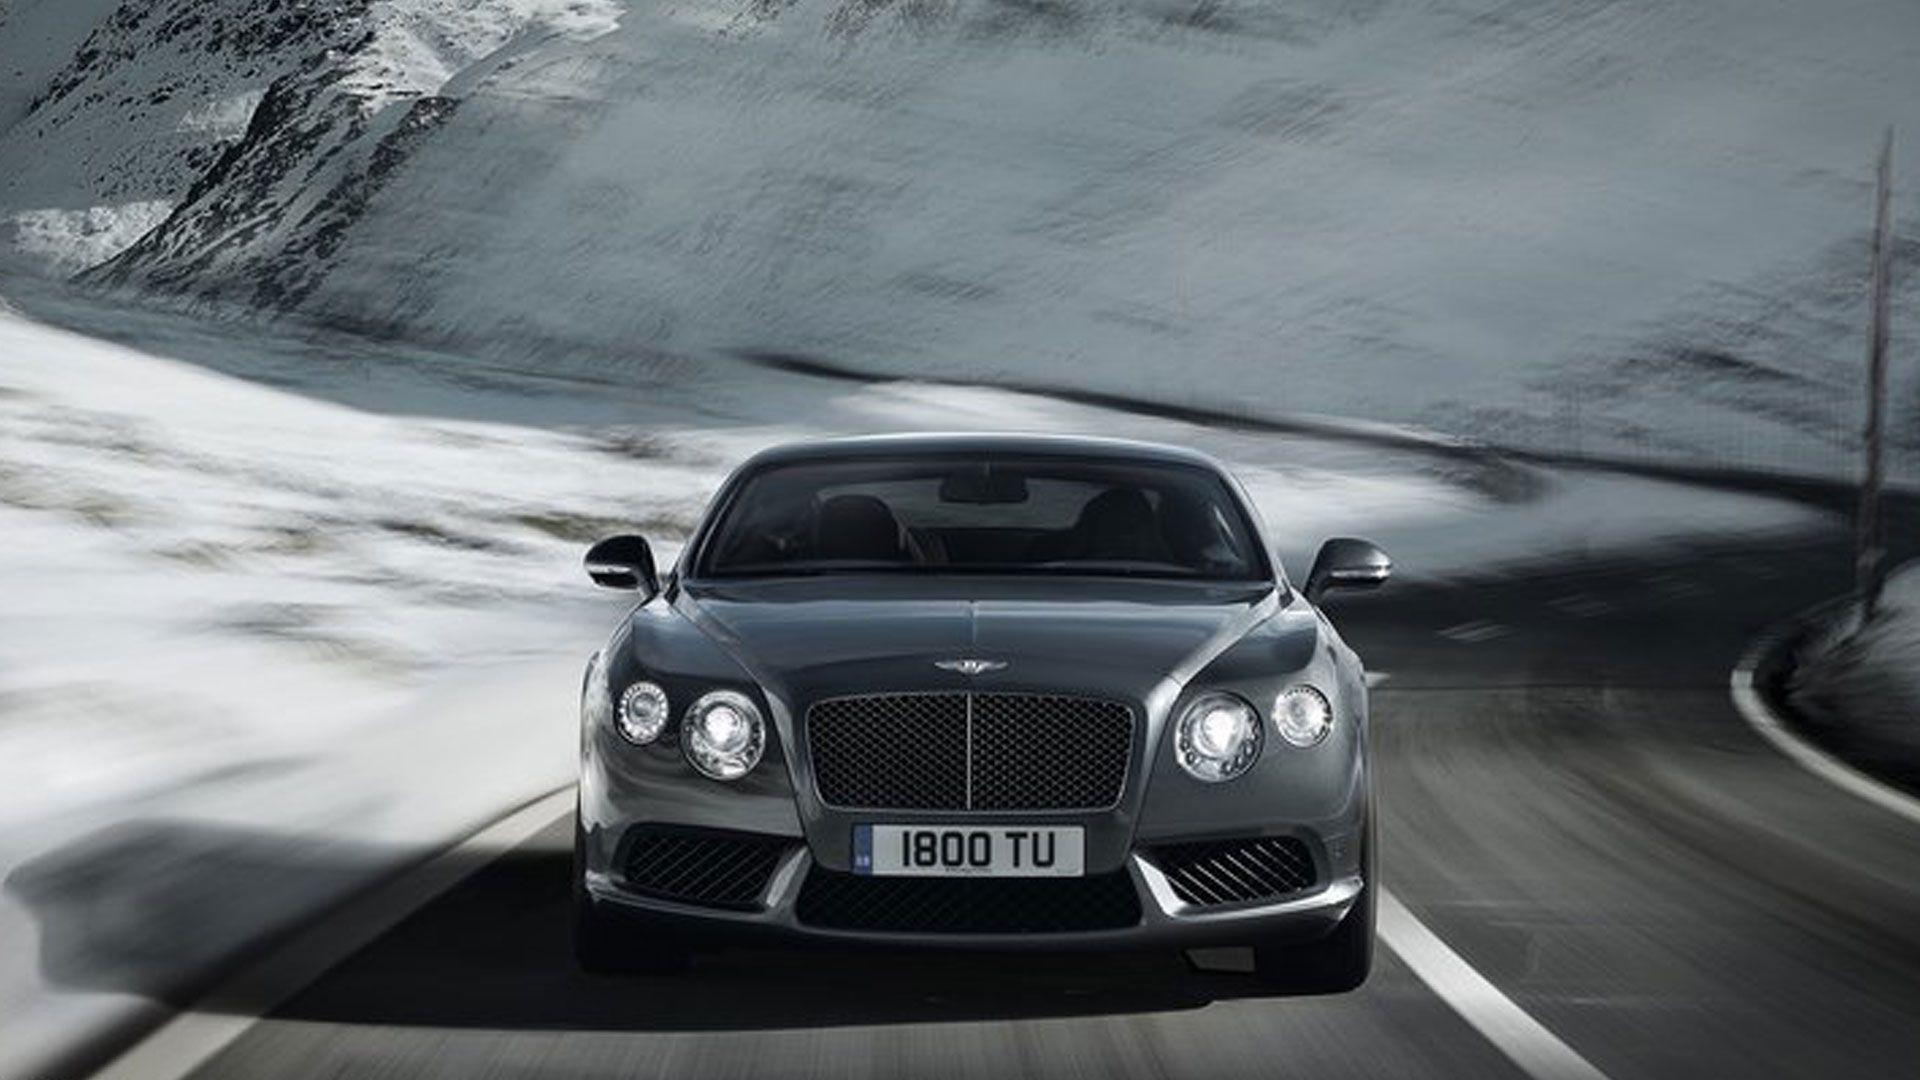 89 Bentley Continental GT Speed HD Wallpapers | Background Images ...